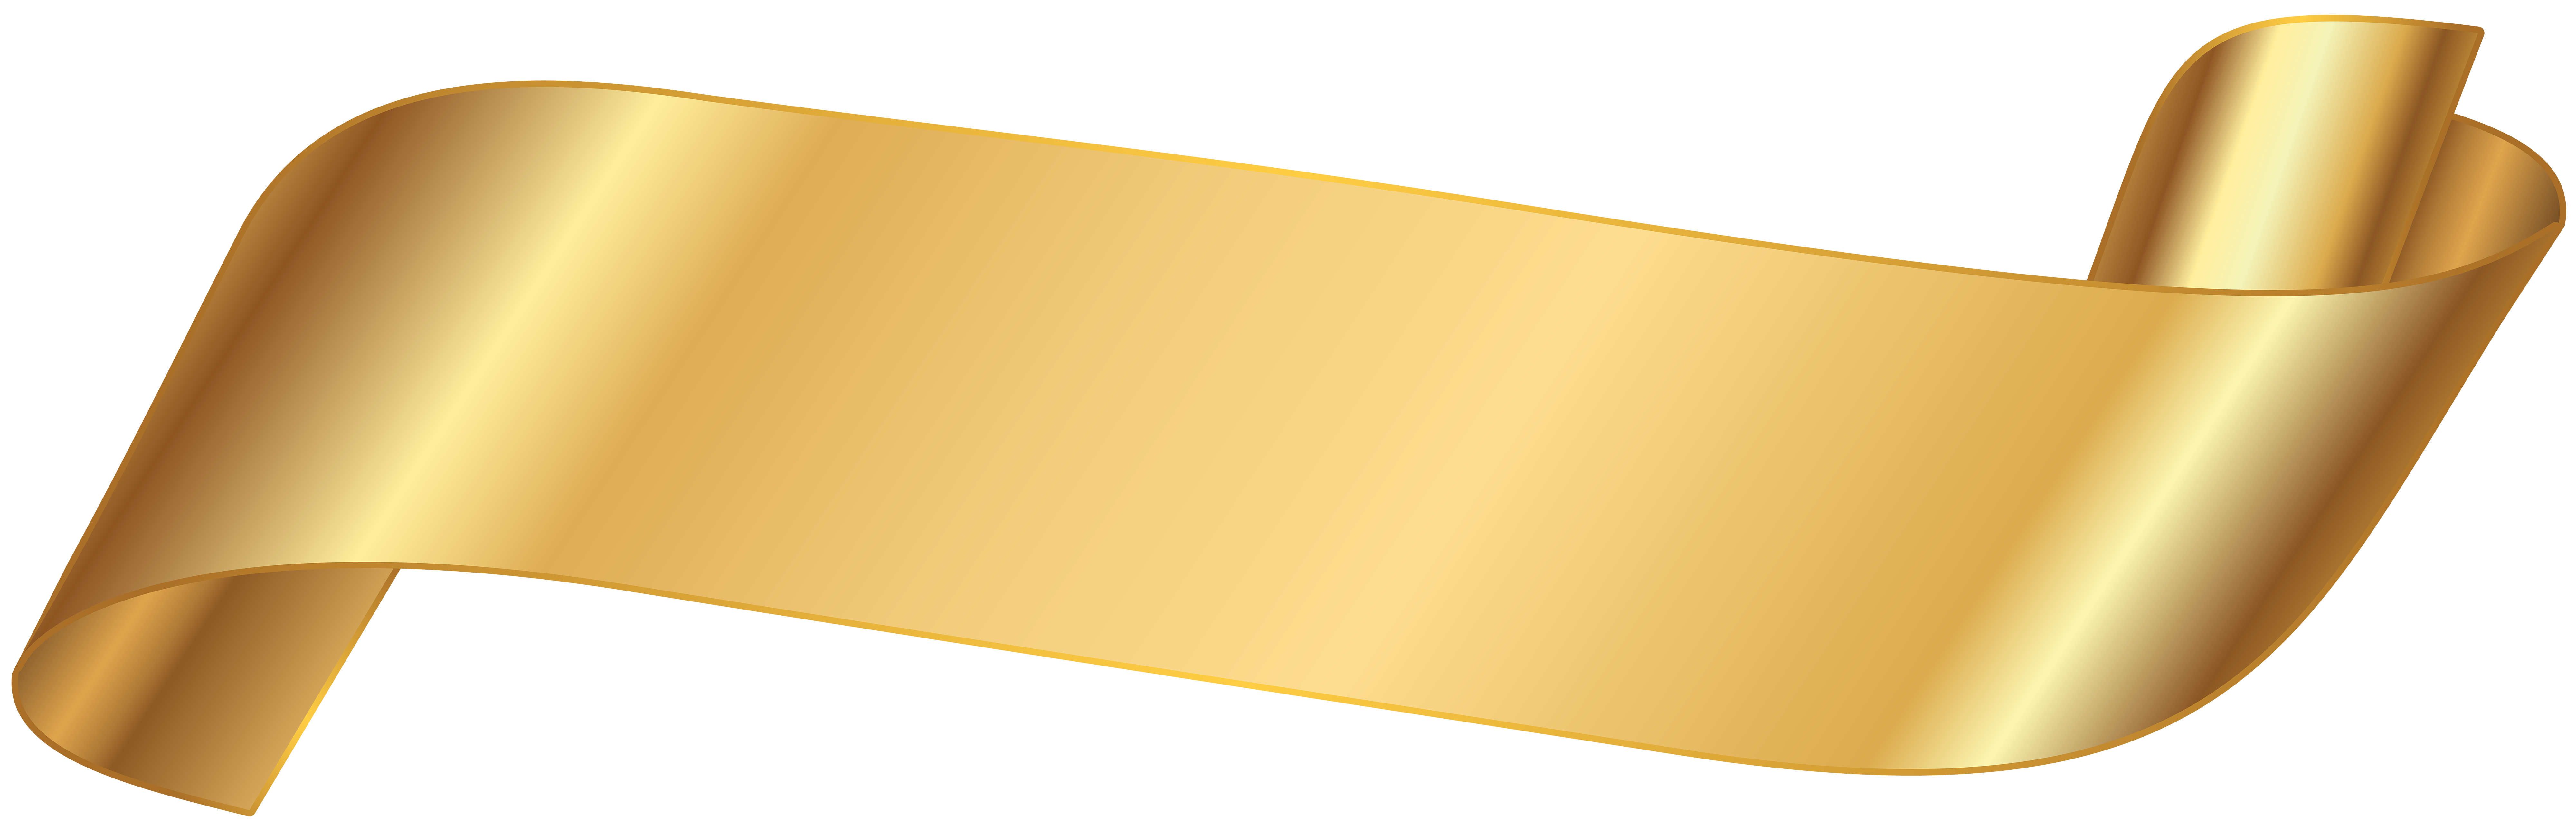 gold rectangle png